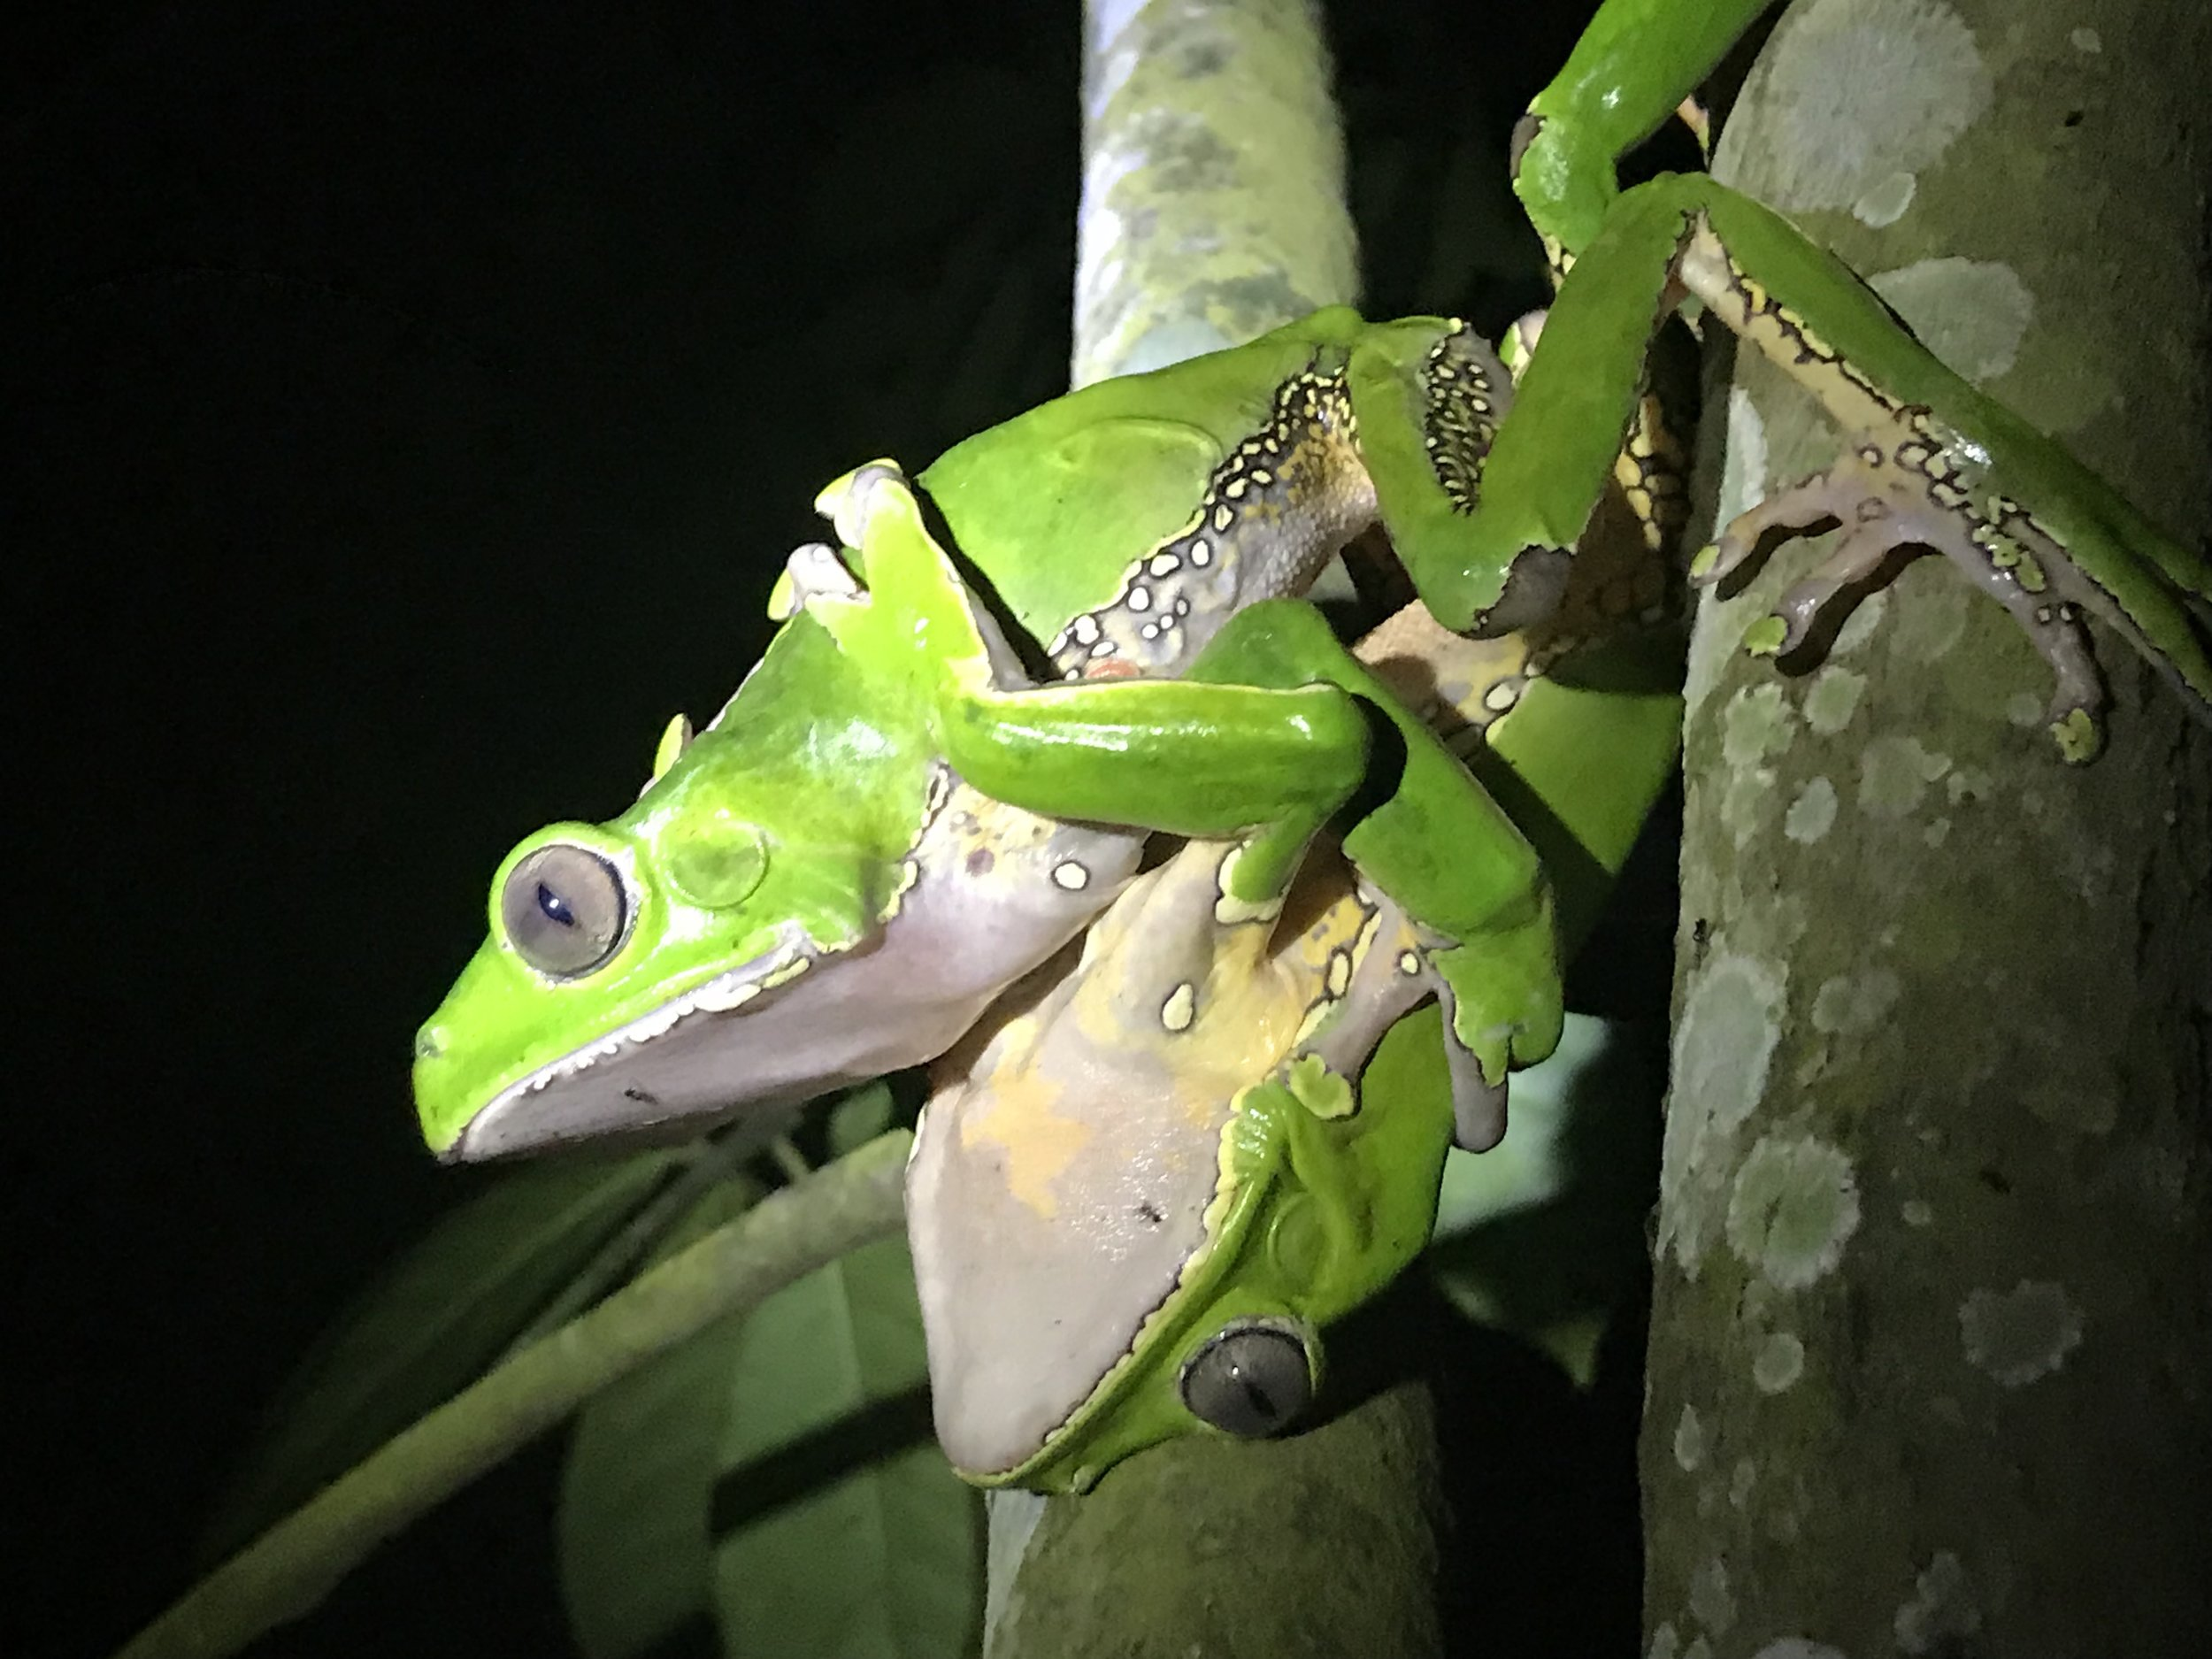 """What is Kambo? - Phyllomedusa Bicolor, otherwise known as """"Kambo"""" is a natural vaccine derived from the waxy secretion on the skin of the green tree frog that lives in northwestern parts of the Amazon jungle and is used traditionally by the indigenous tribes of Colombia, Brazil, and Peru as a medicine and spiritual aide."""